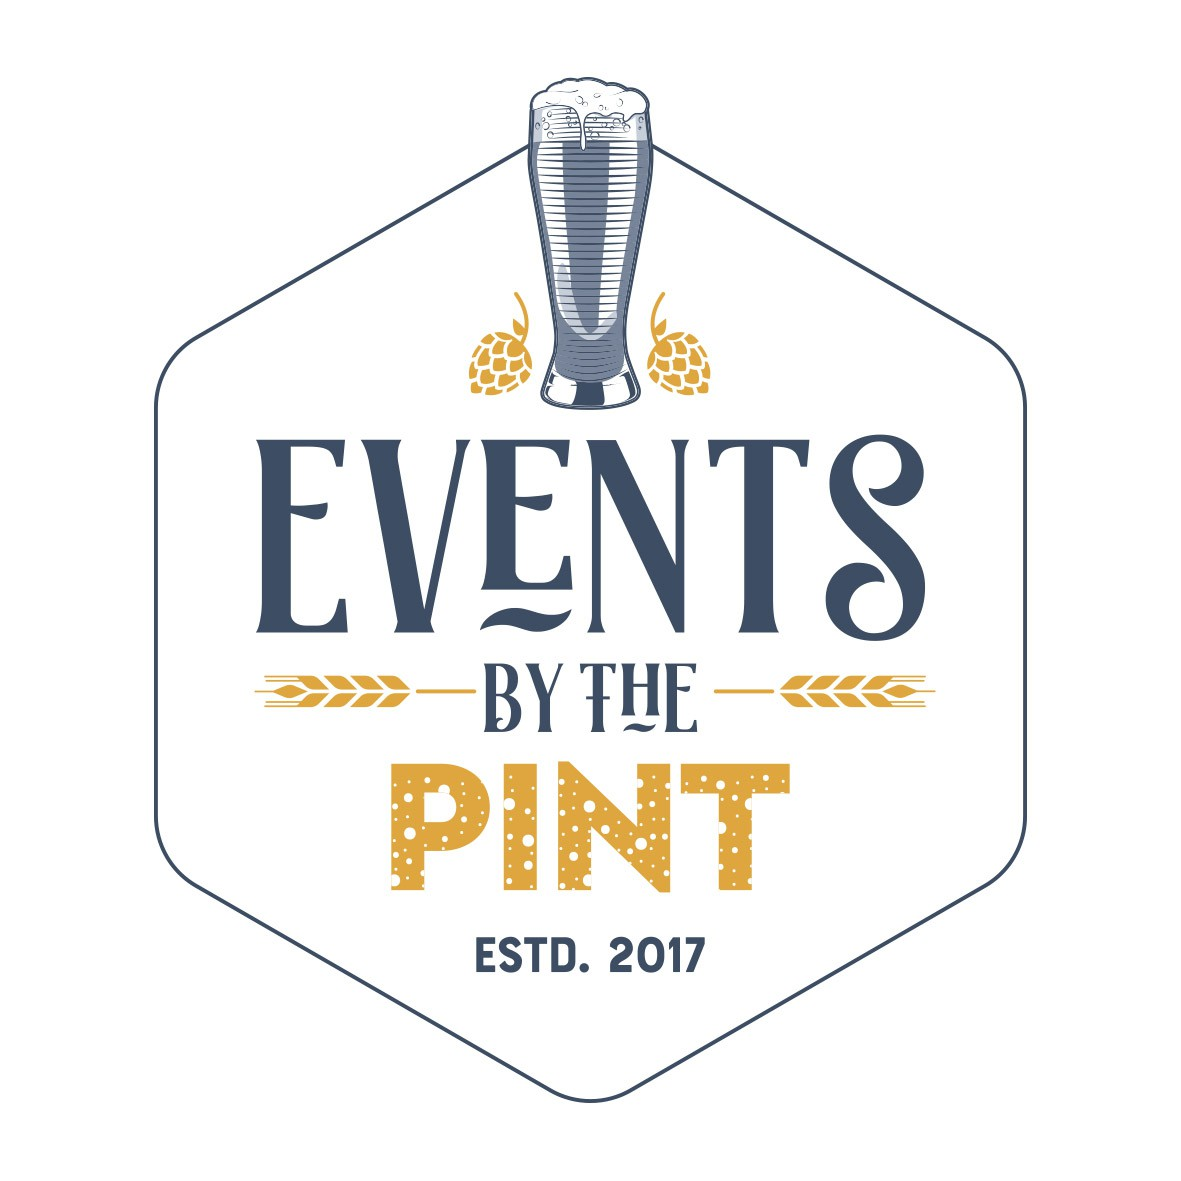 Brewery events consultant needs a logo!